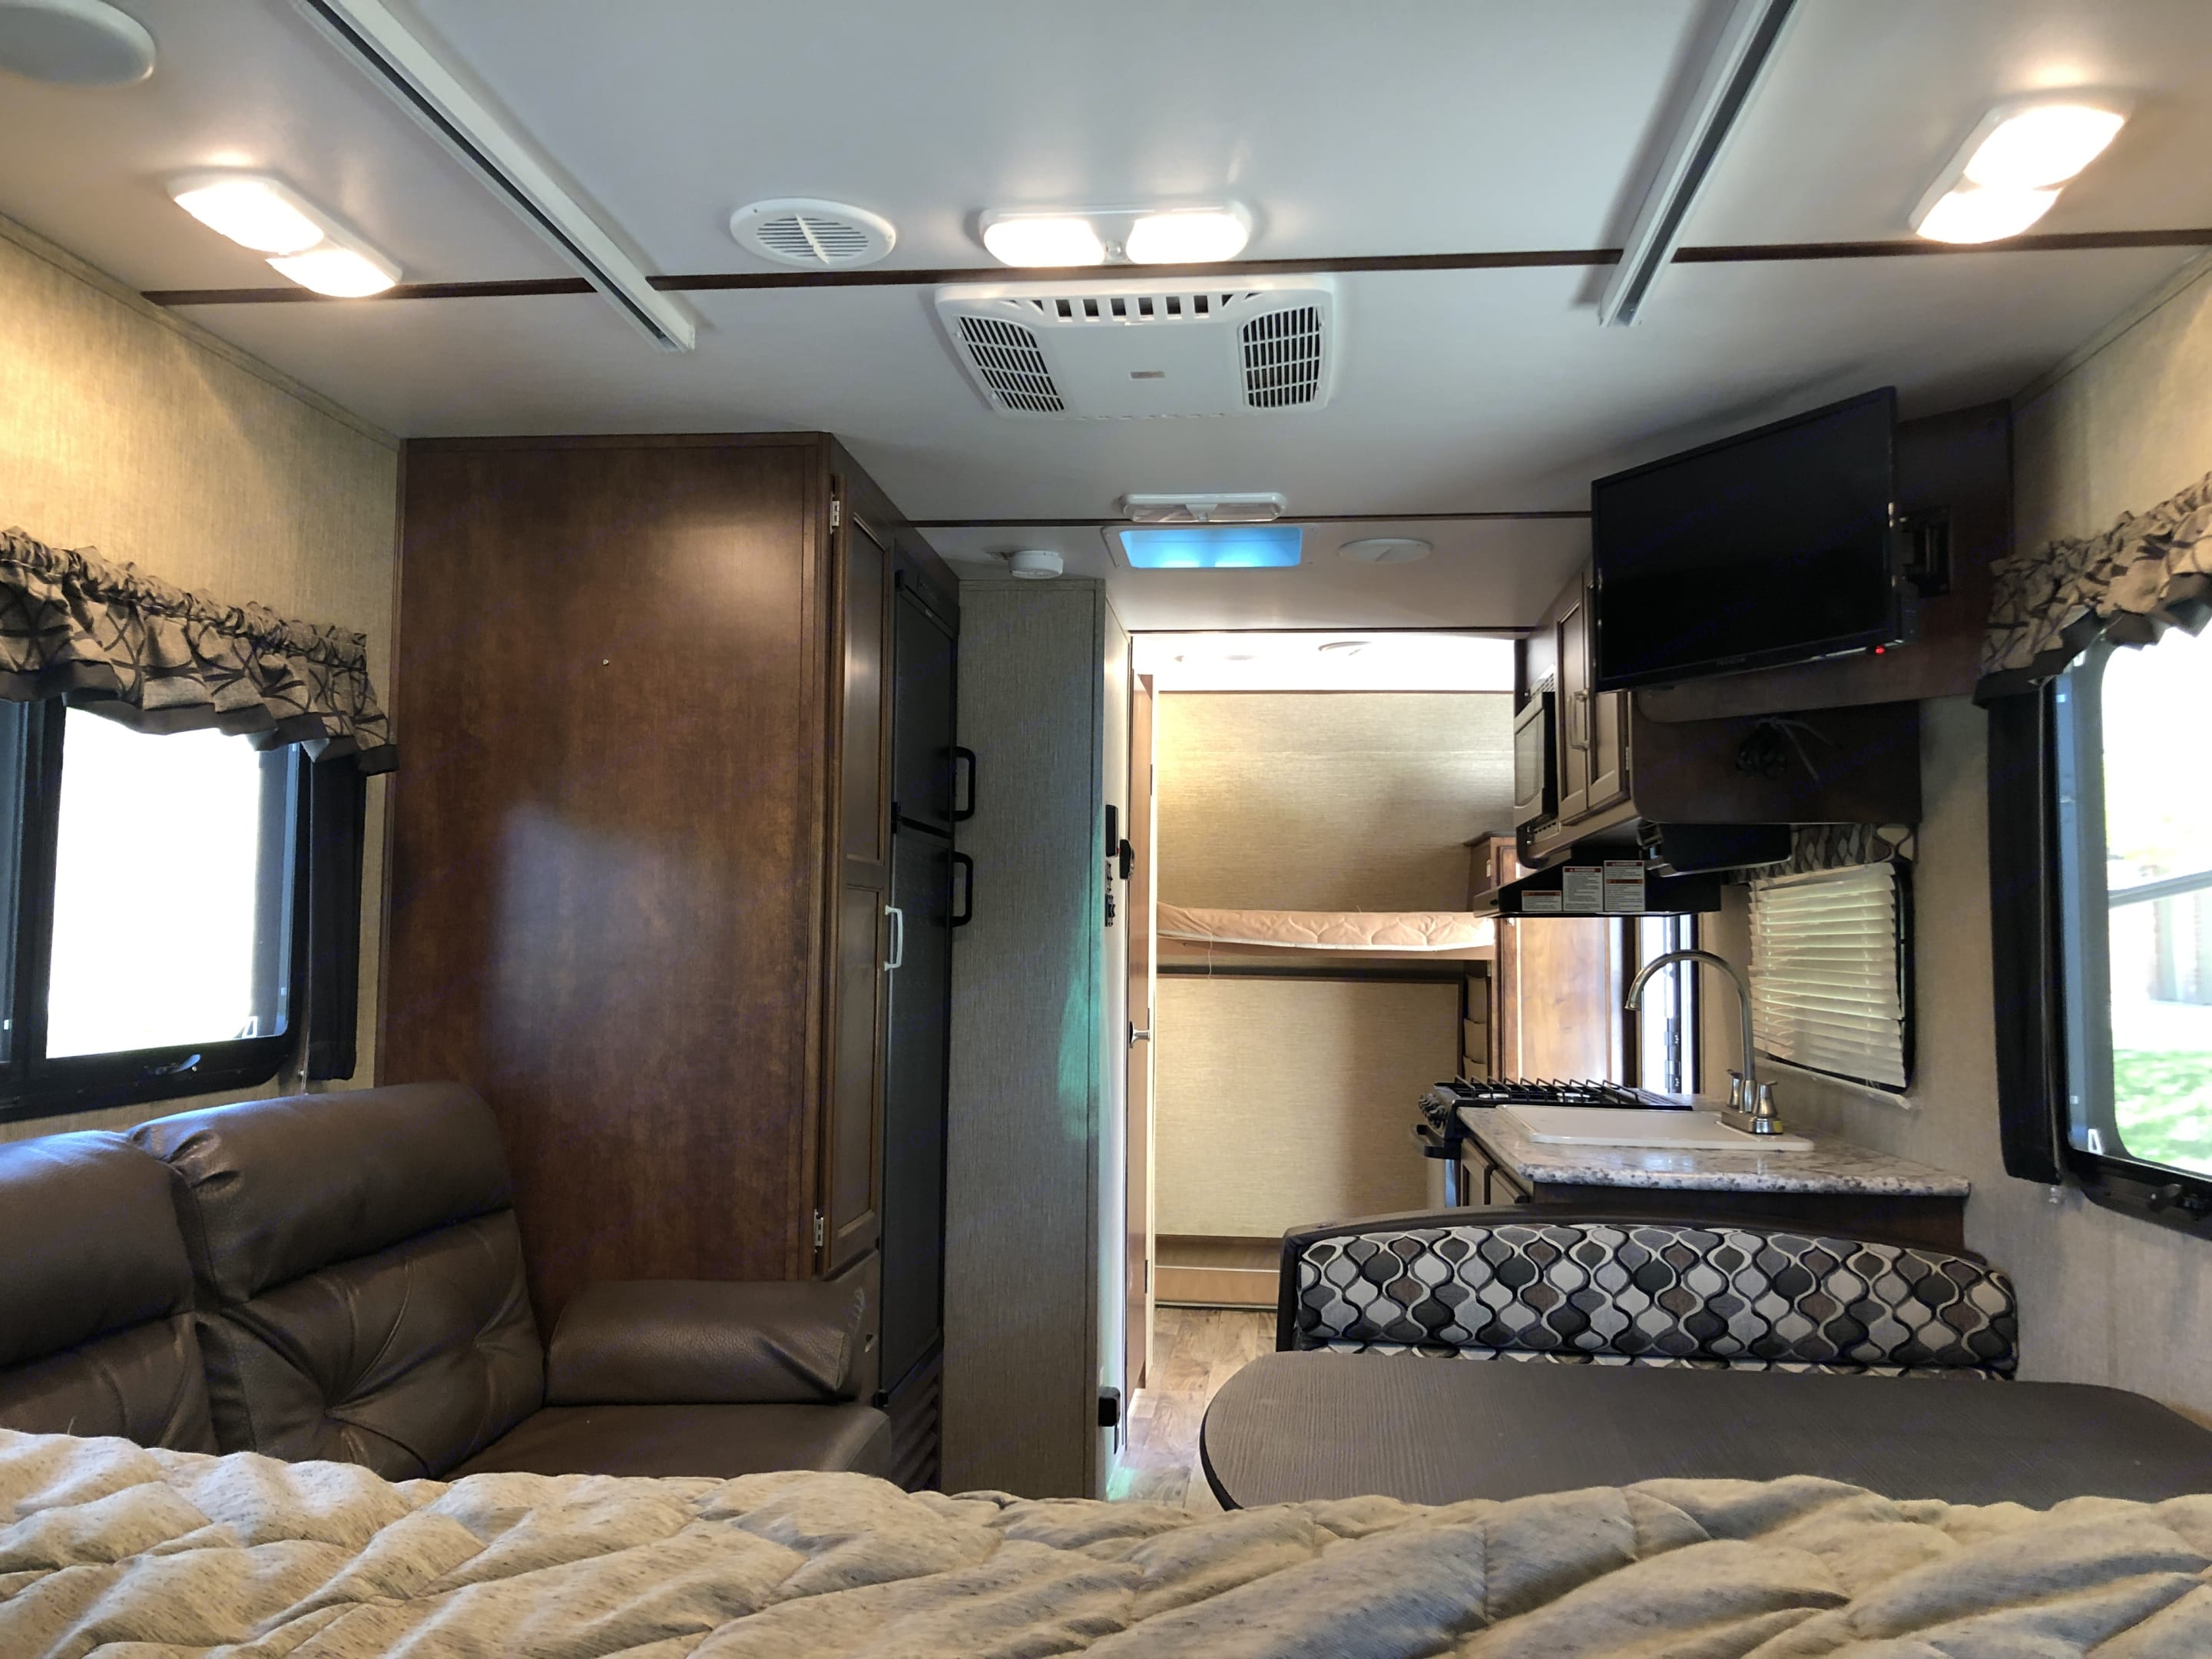 View from King Sized bed looking to front of camper (TV in top right). Keystone Outback UltraLite 2017